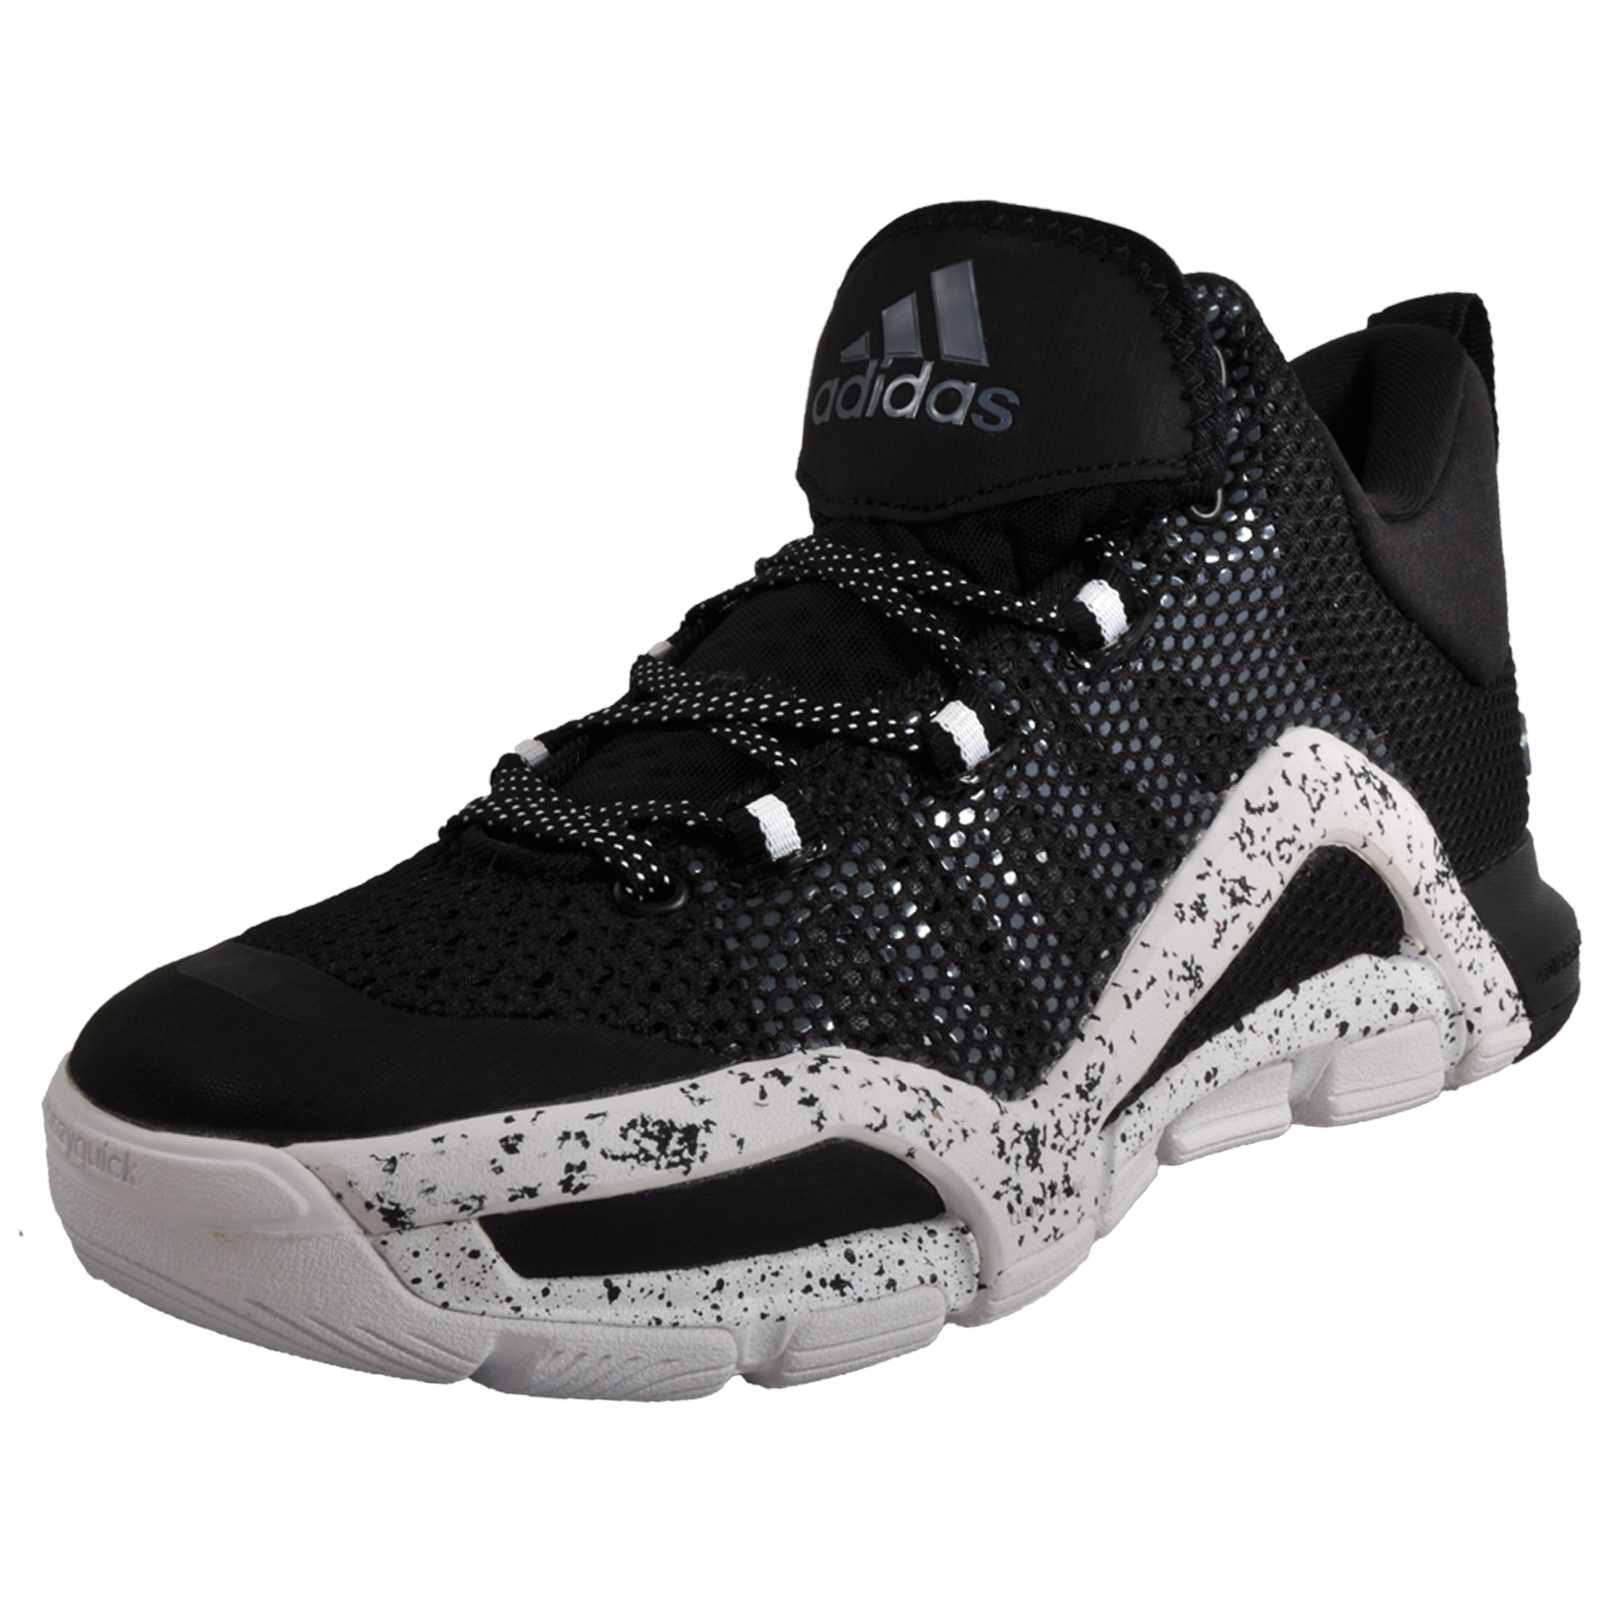 b14a3f4f4f Adidas CrazyQuick 3 Men s Premium Basketball Fitness Court Trainers Black